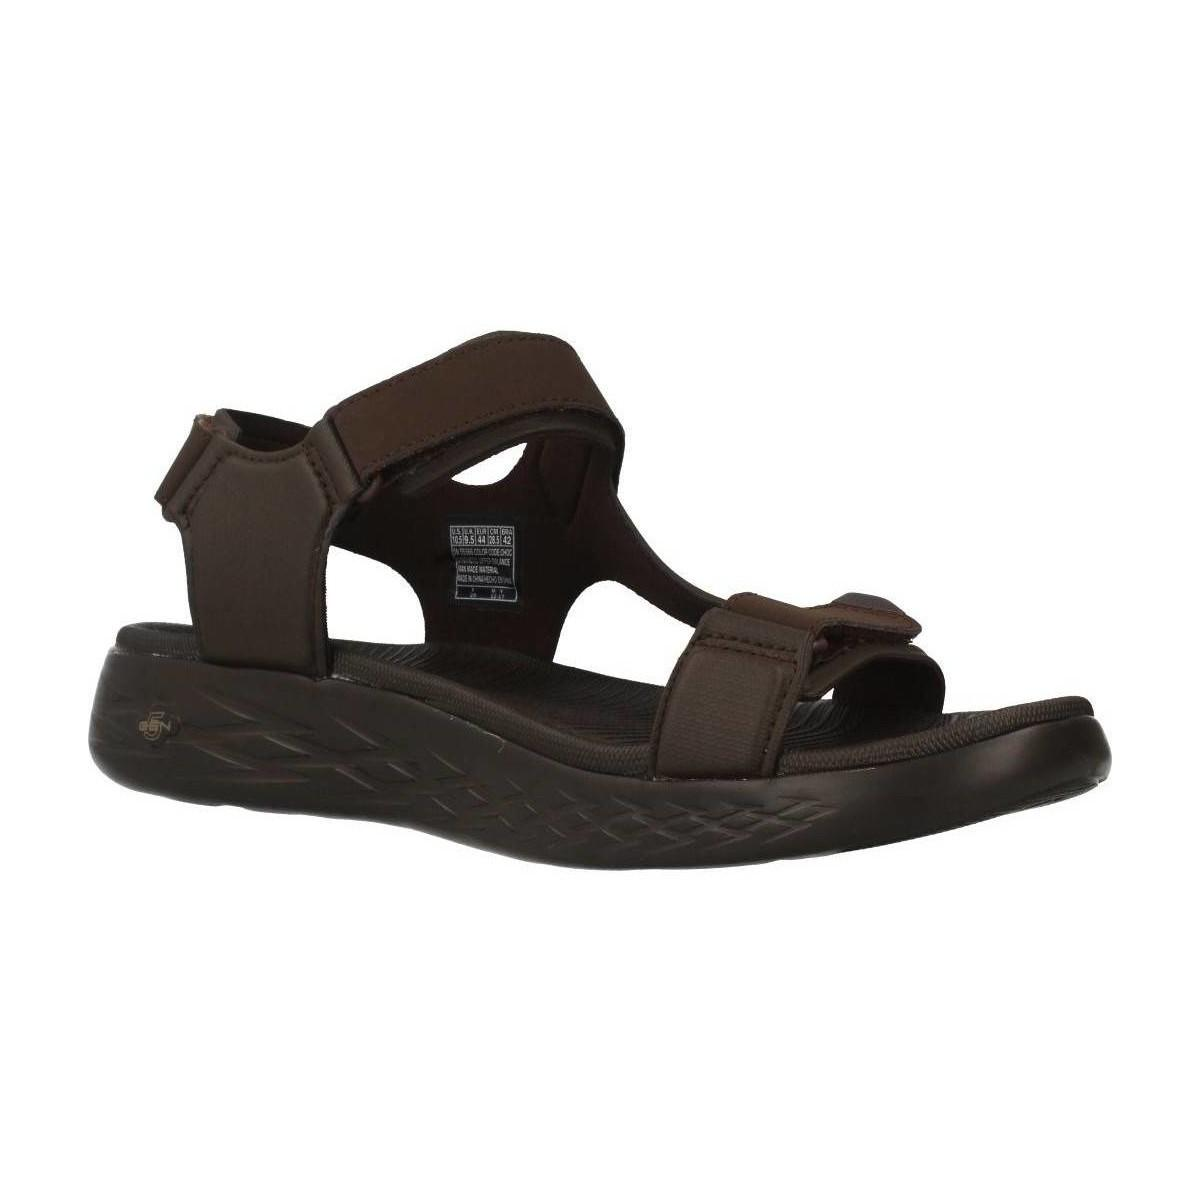 Skechers Synthetic On The Go 600 Venture 55366 Choc Men's Sandals In Brown for Men